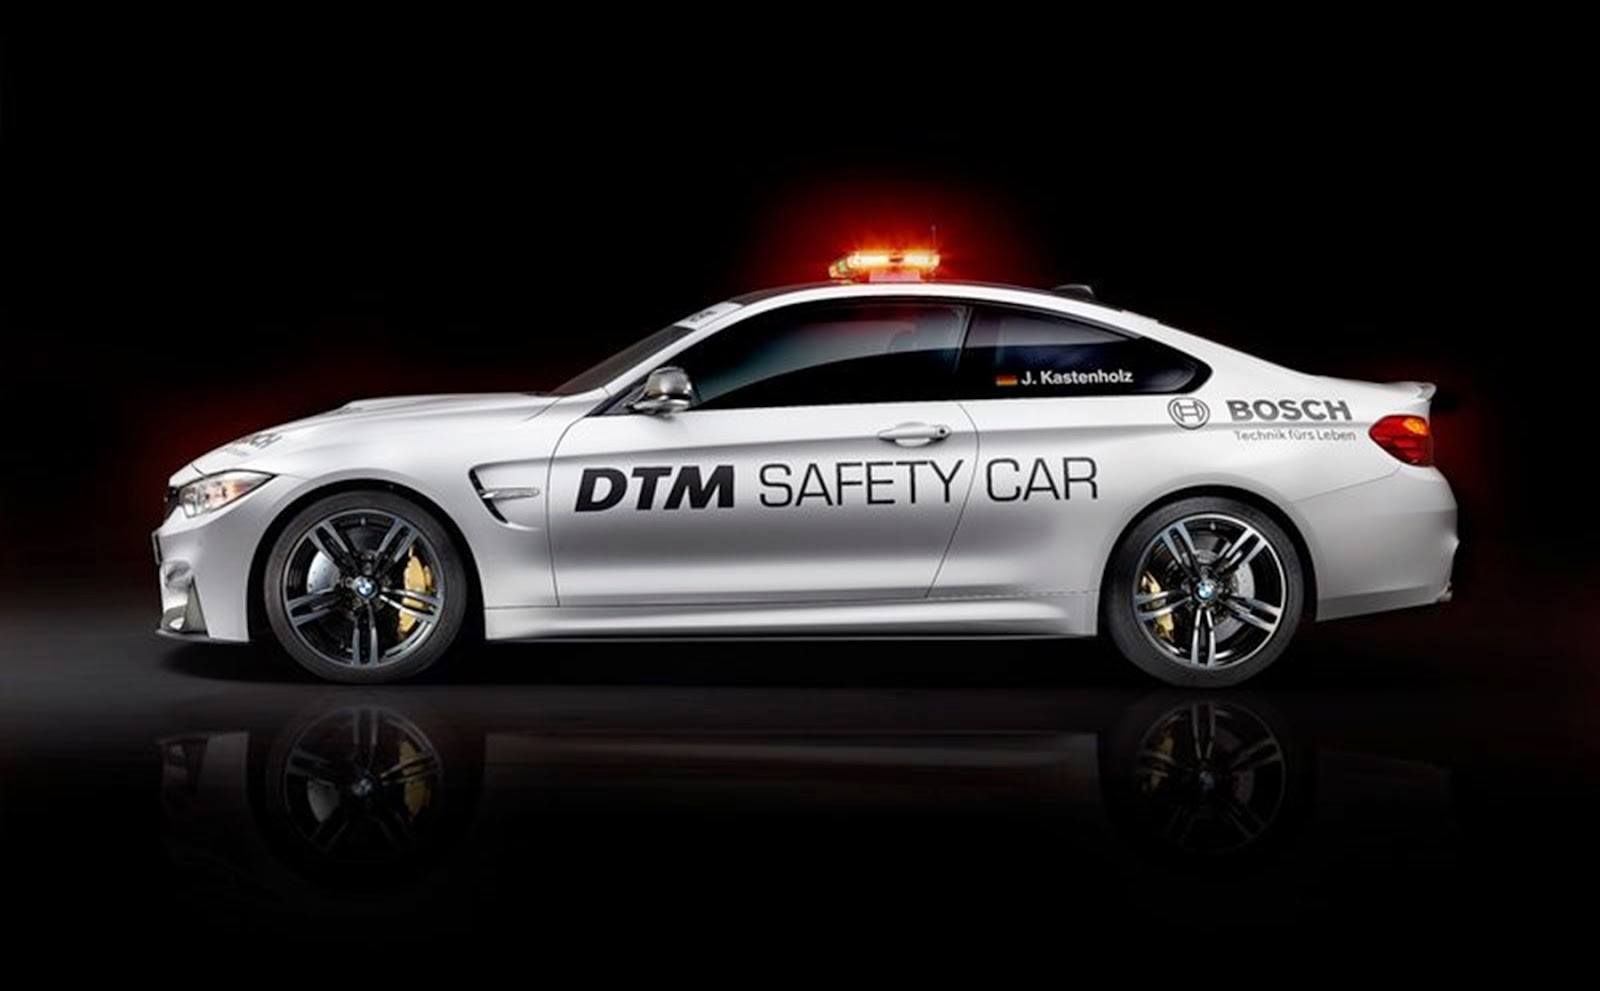 Carro - BMW M4 Coupe DTM Safety Car (2014)